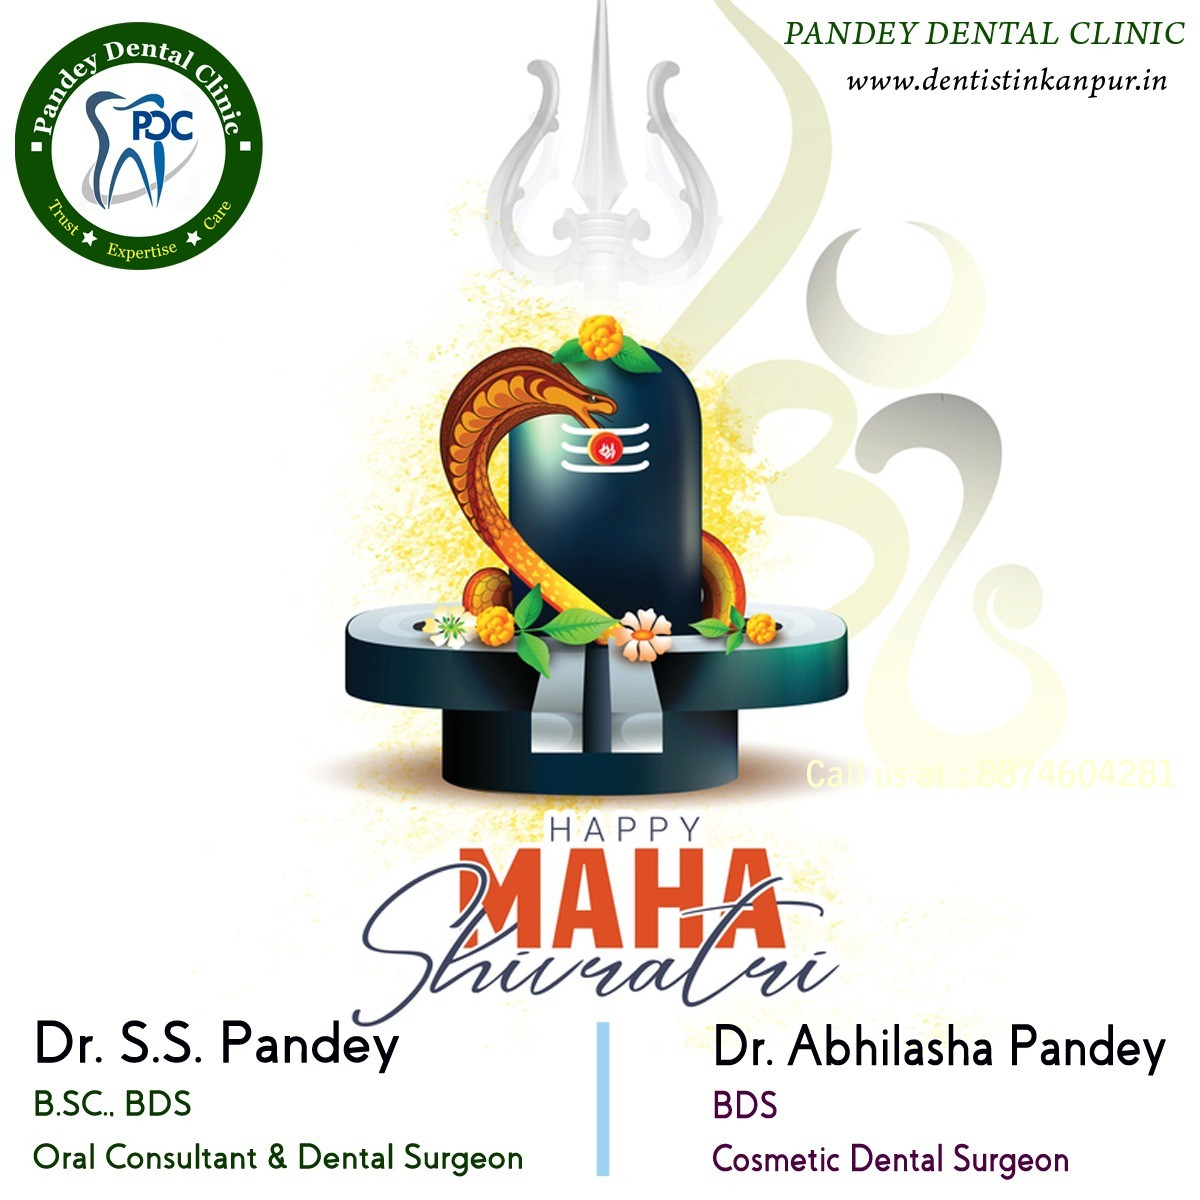 Pandey dental clinic